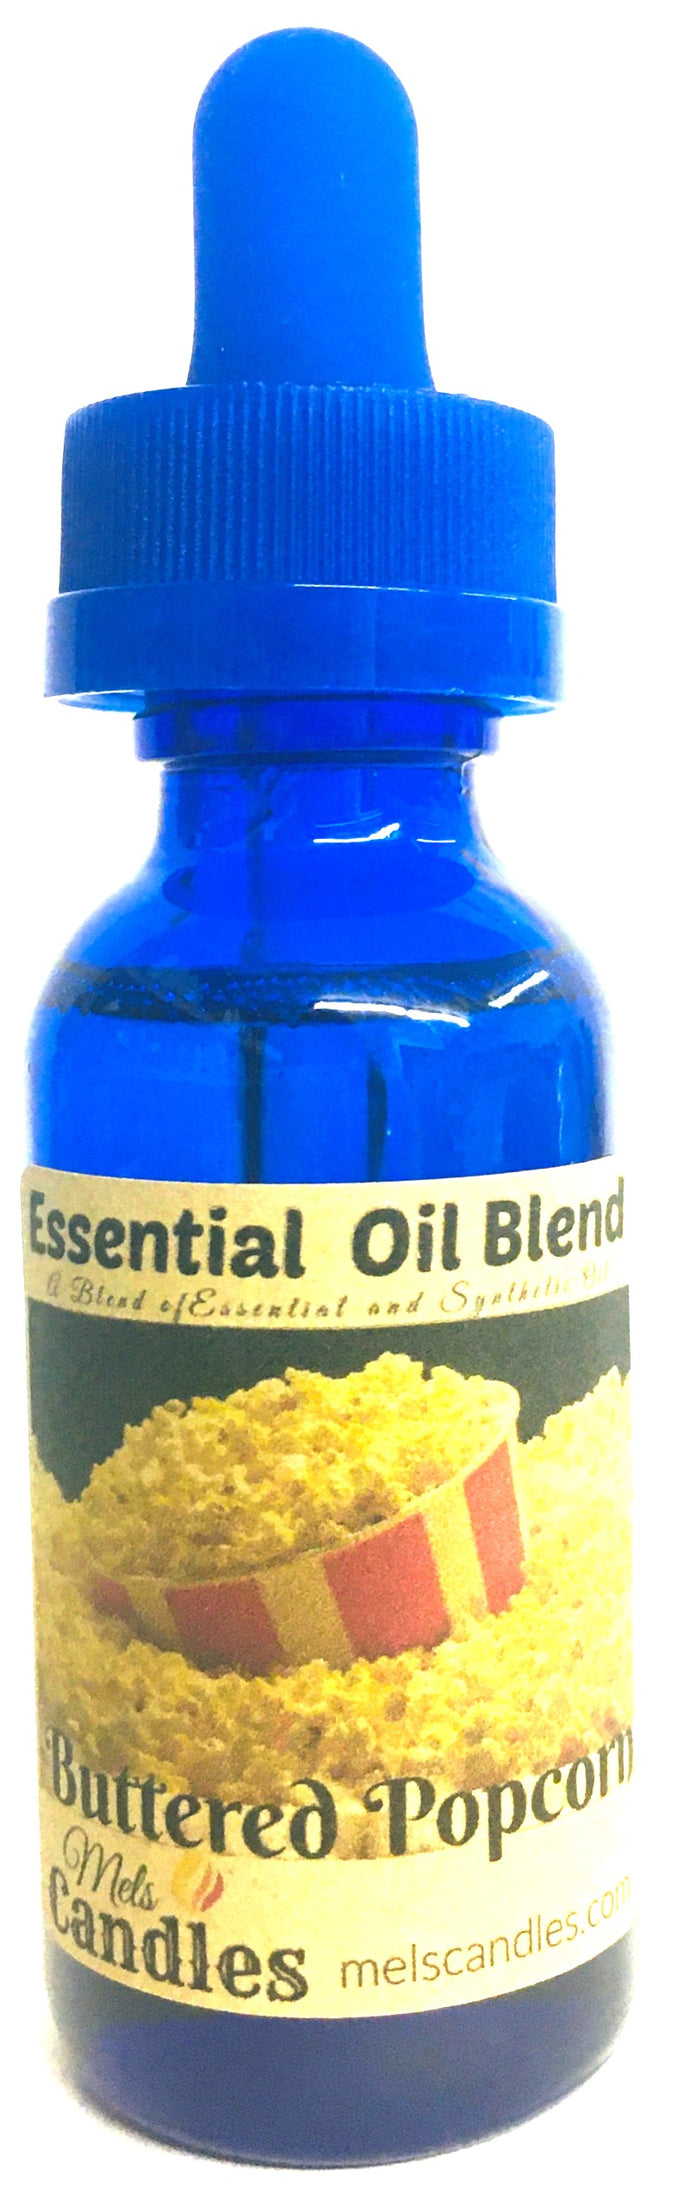 Buttered Popcorn 1 Ounce Glass Dropper Bottle of Fragrance / Essential Oil Blend